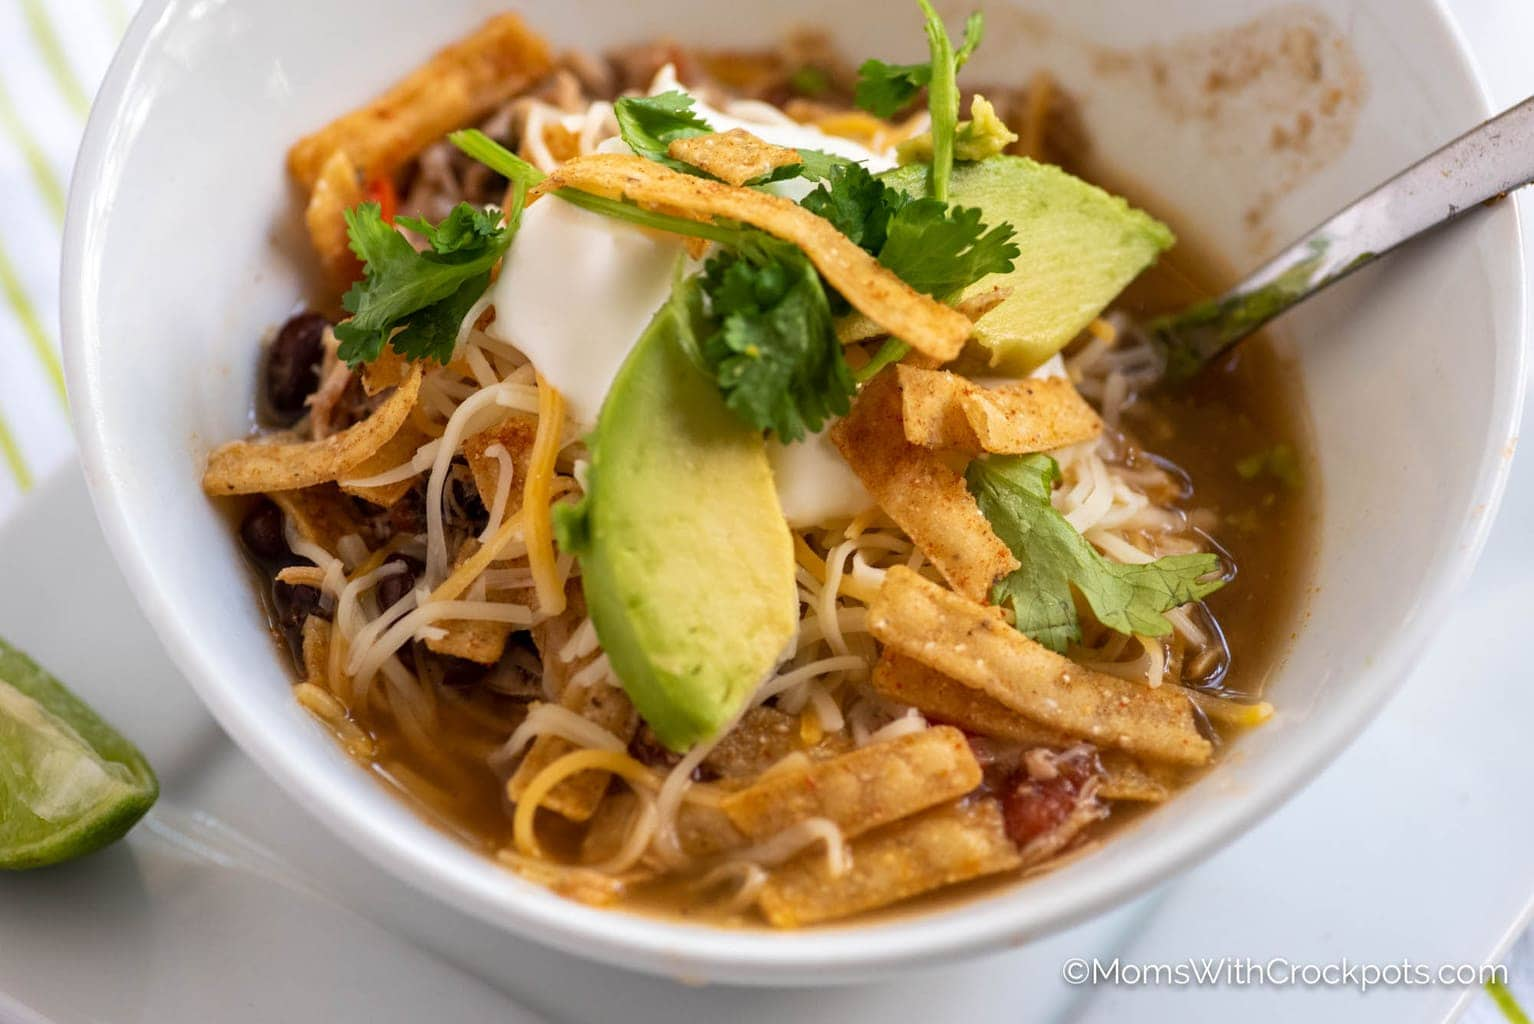 Crockpot Chicken Tortilla Soup with toppings